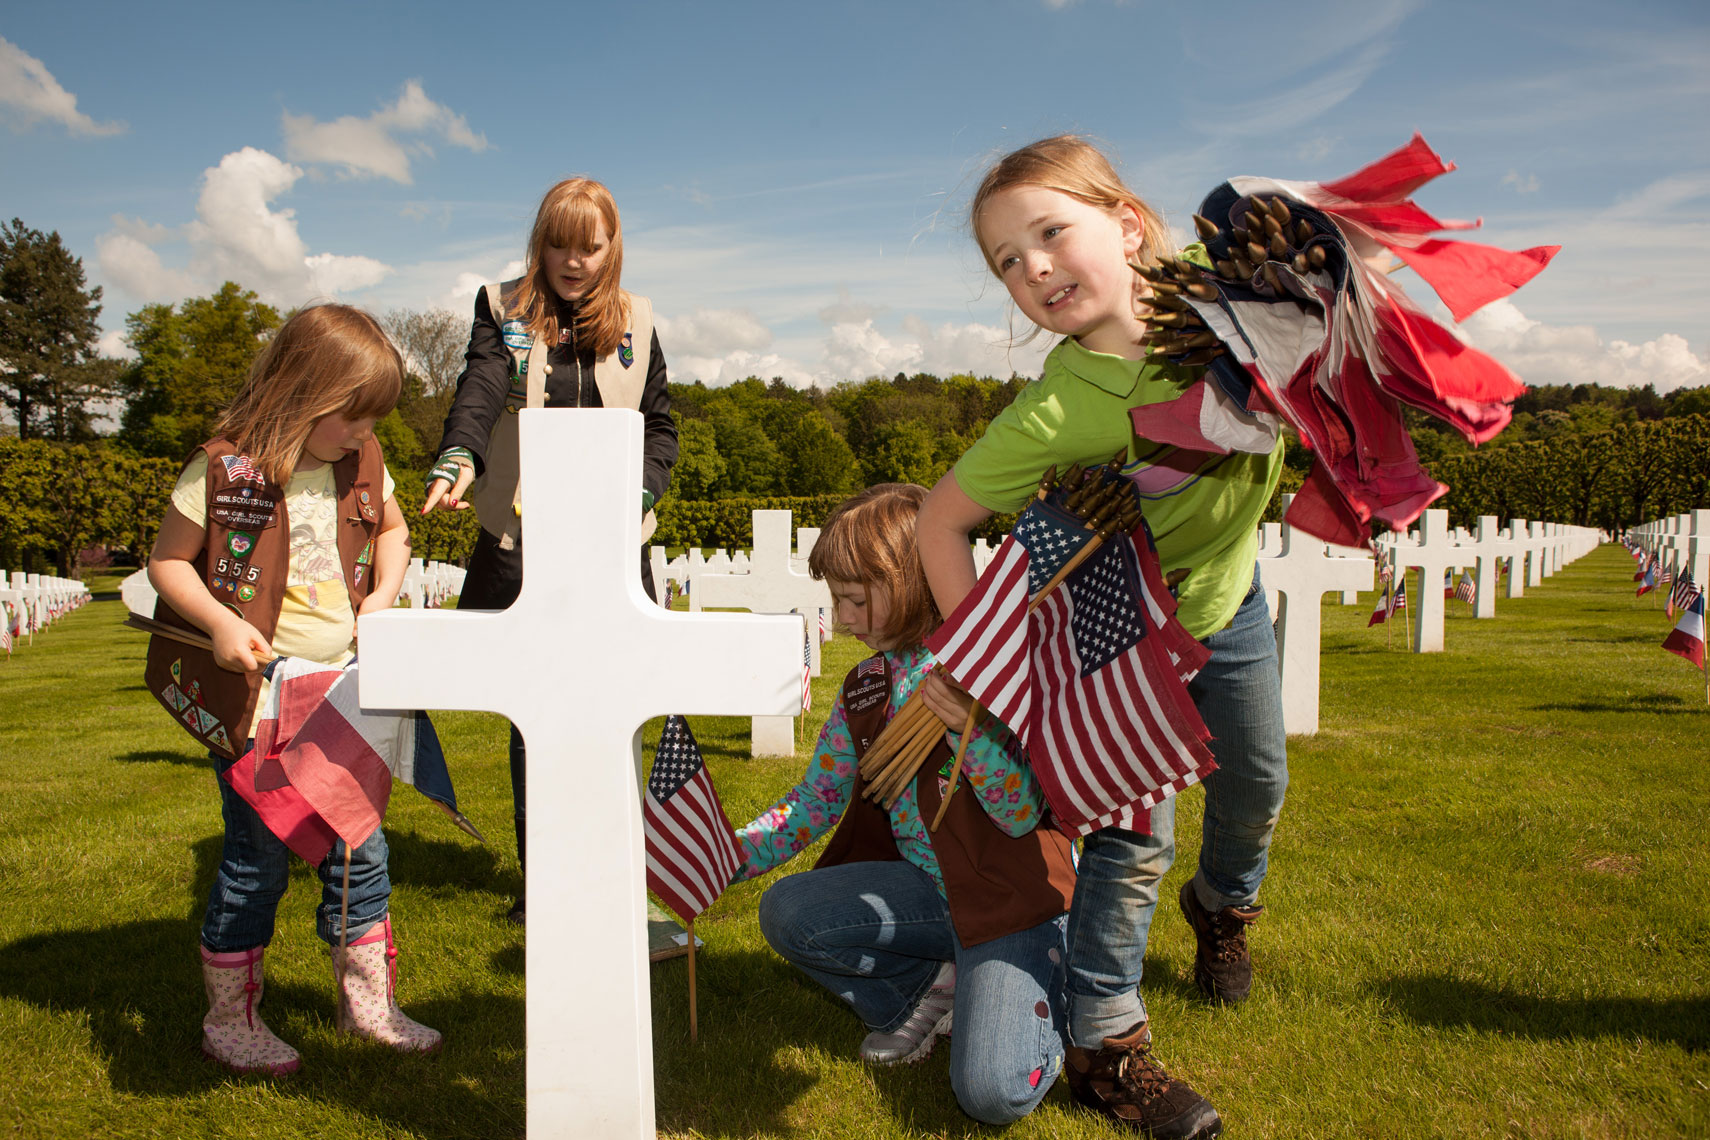 21_Kris_Davidson_National_Geographic_Meuse_France_Meuse_Argonne_American_Cemetery_Girl_Scouts_WWI